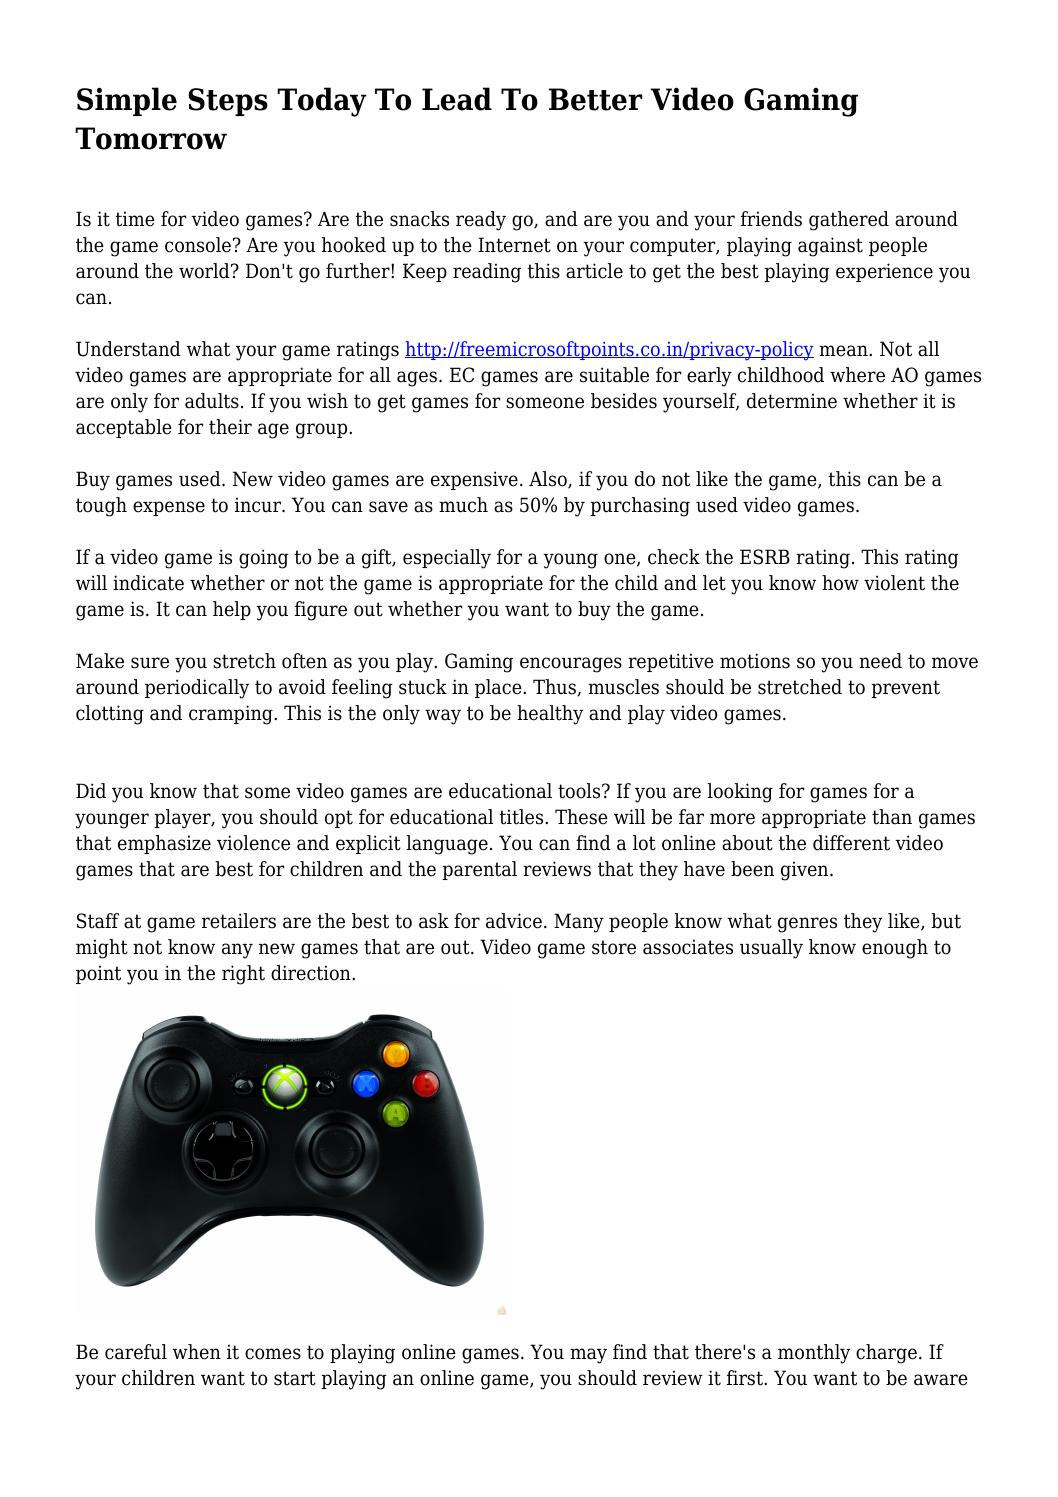 Simple Steps Today To Lead To Better Video Gaming Tomorrow by ...